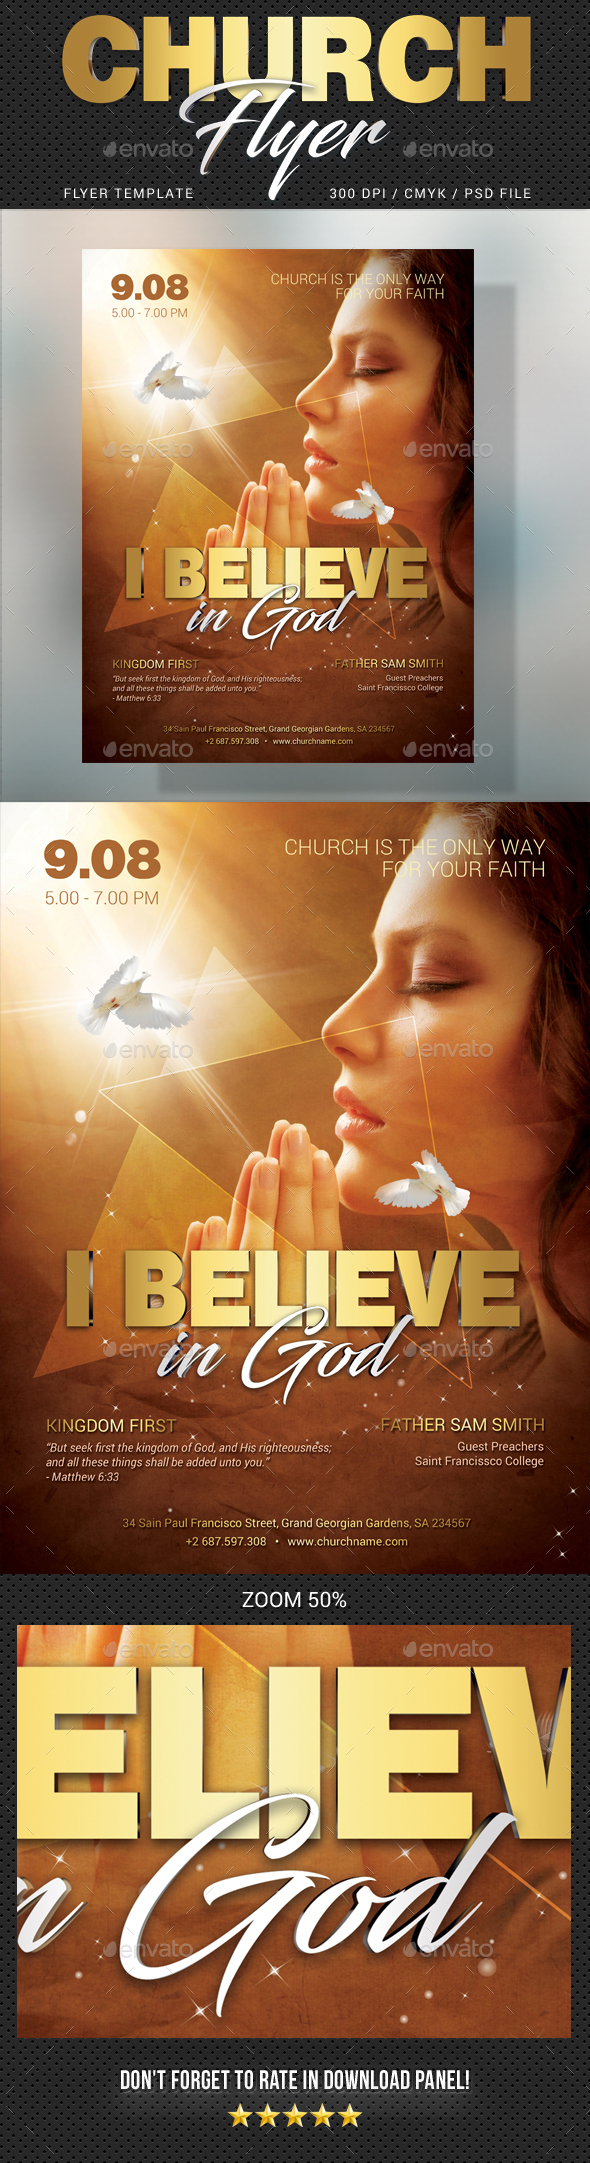 Believe In God Flyer - Church Flyers